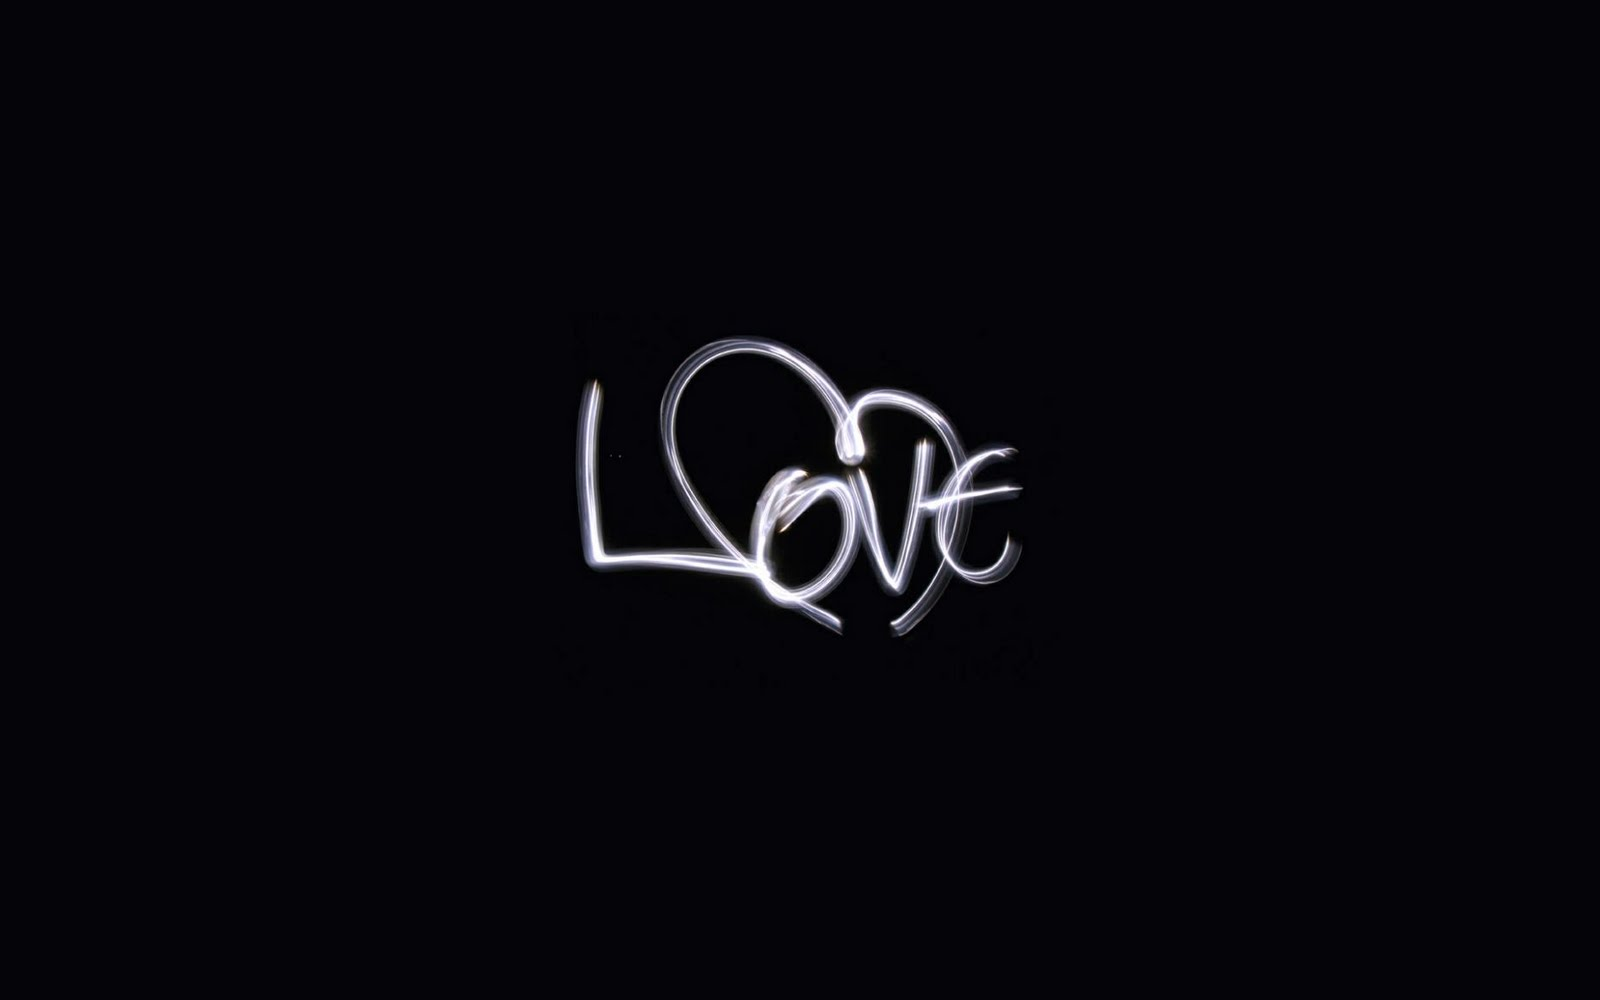 TOP HD WALLPAPERS: LOVE HD WALLPAPER